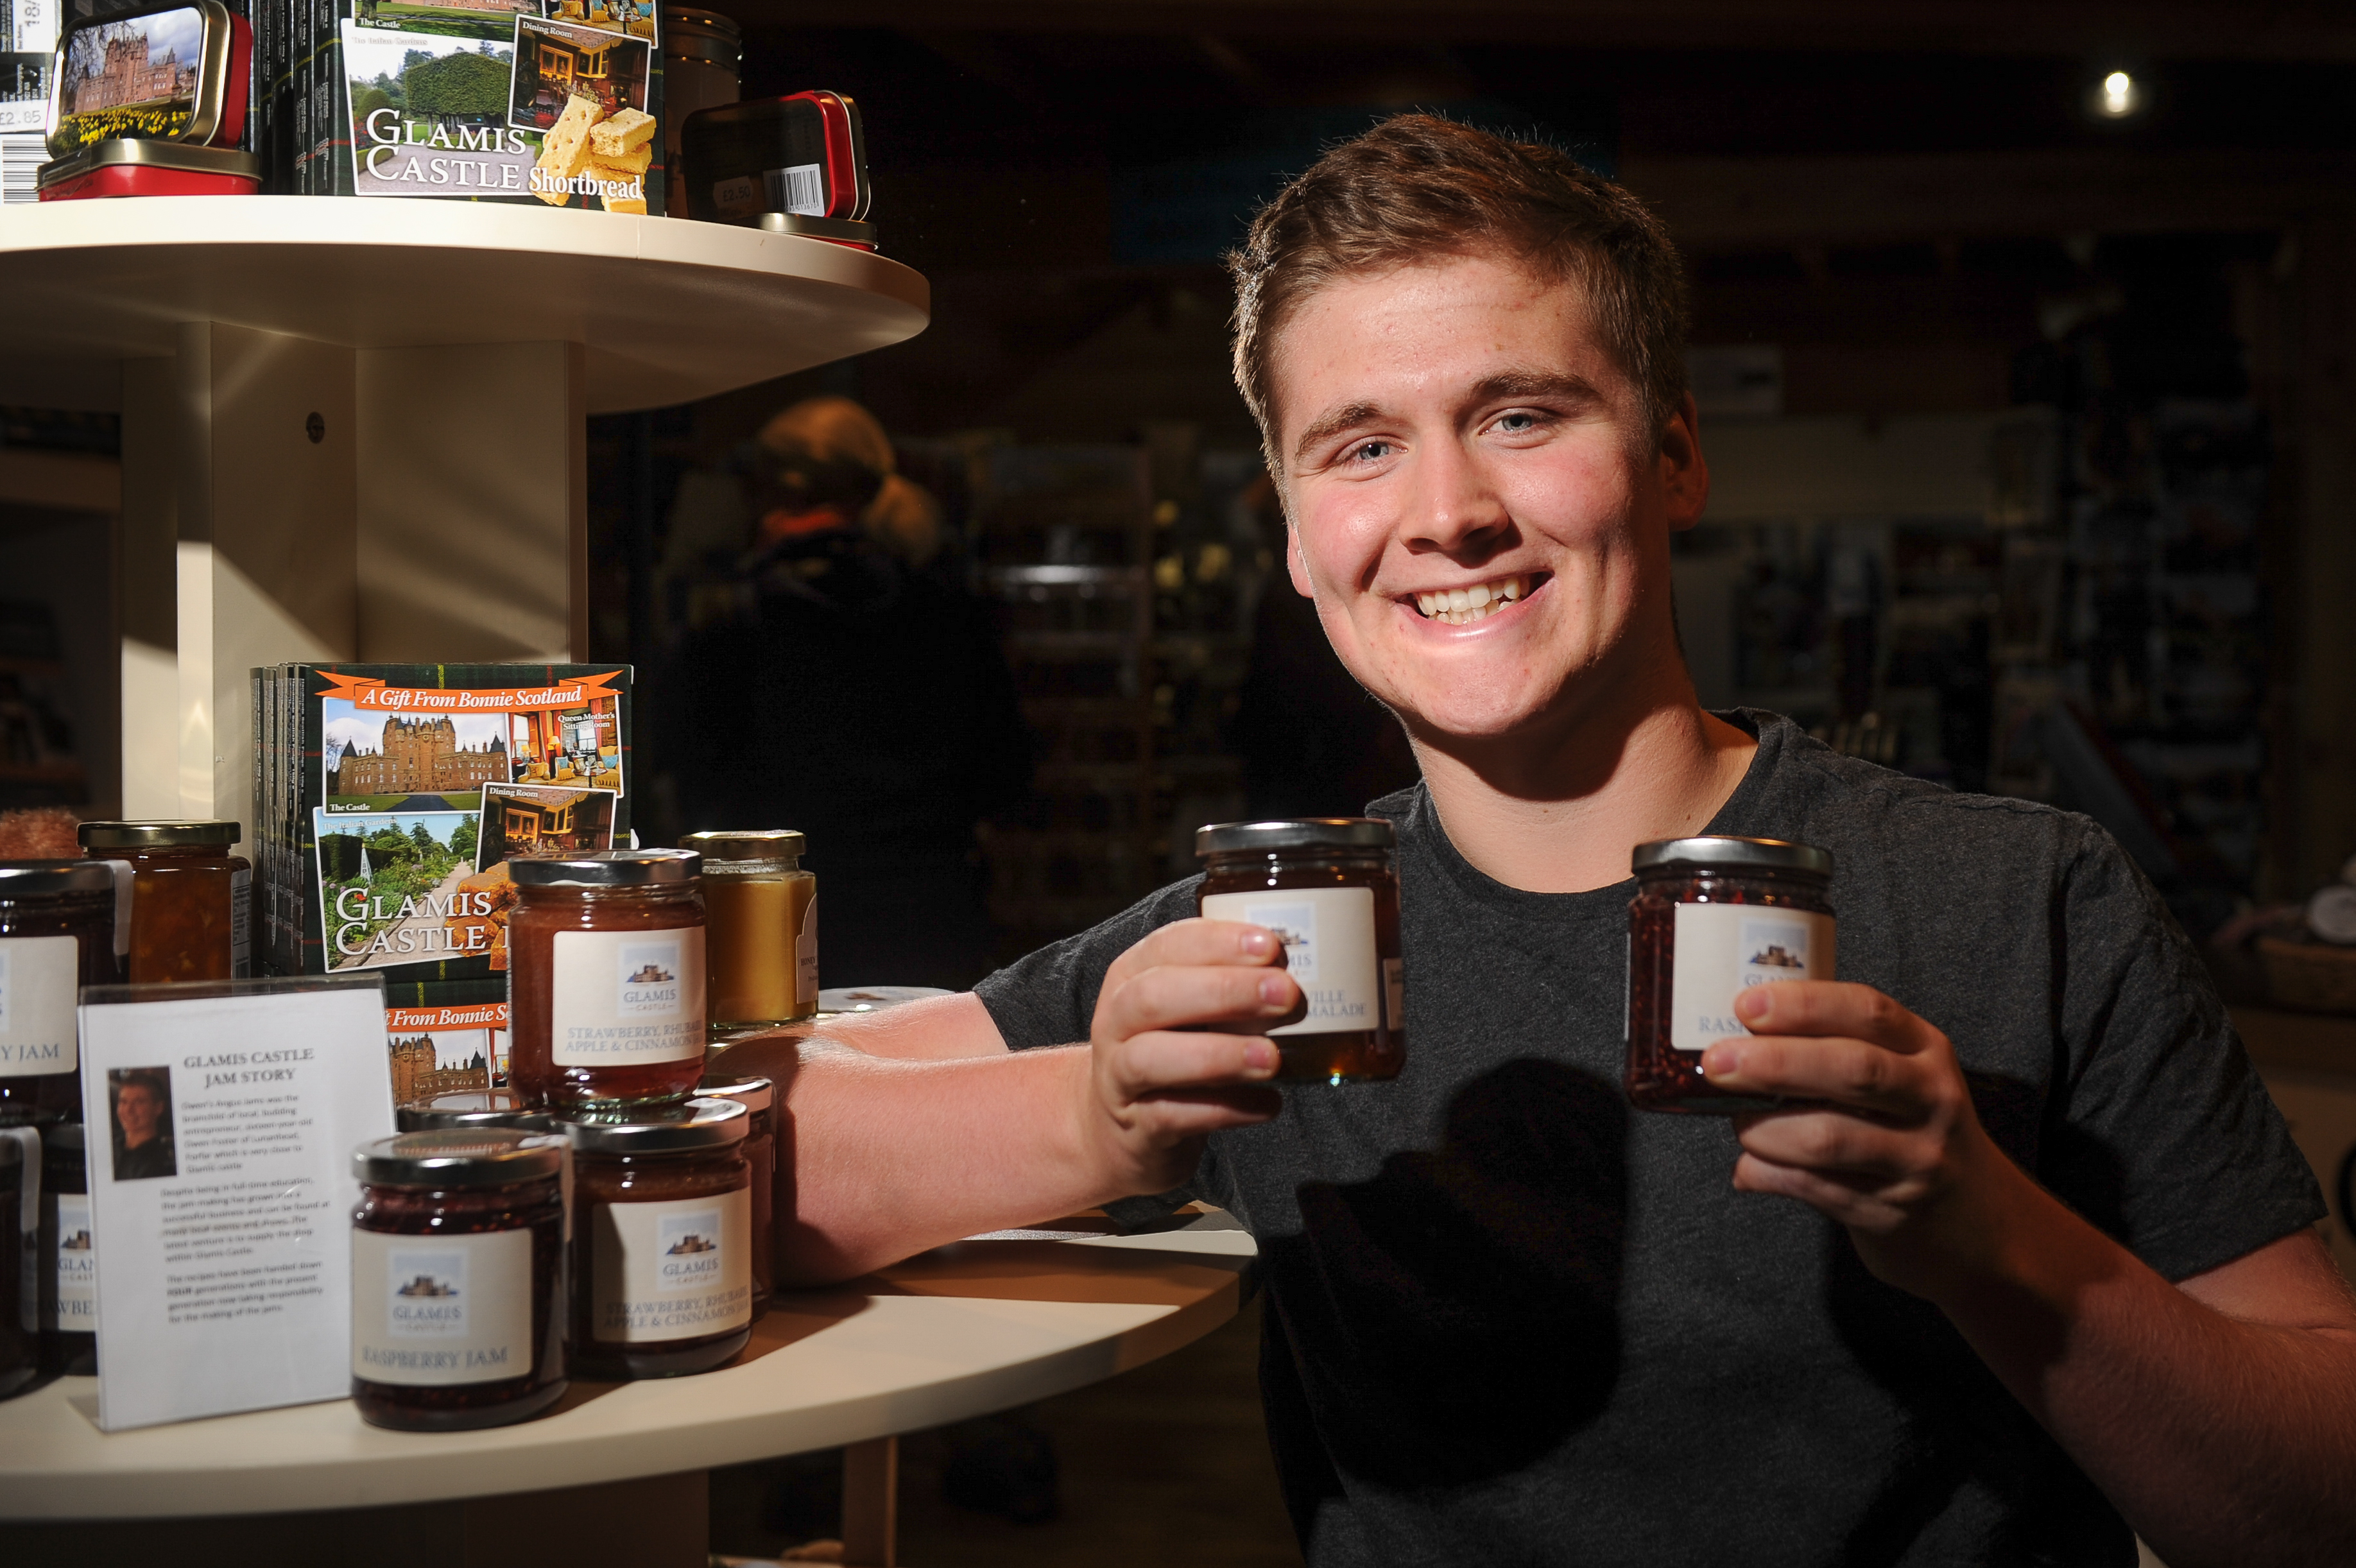 Owen Foster has launched a crowdfunder to build his business.